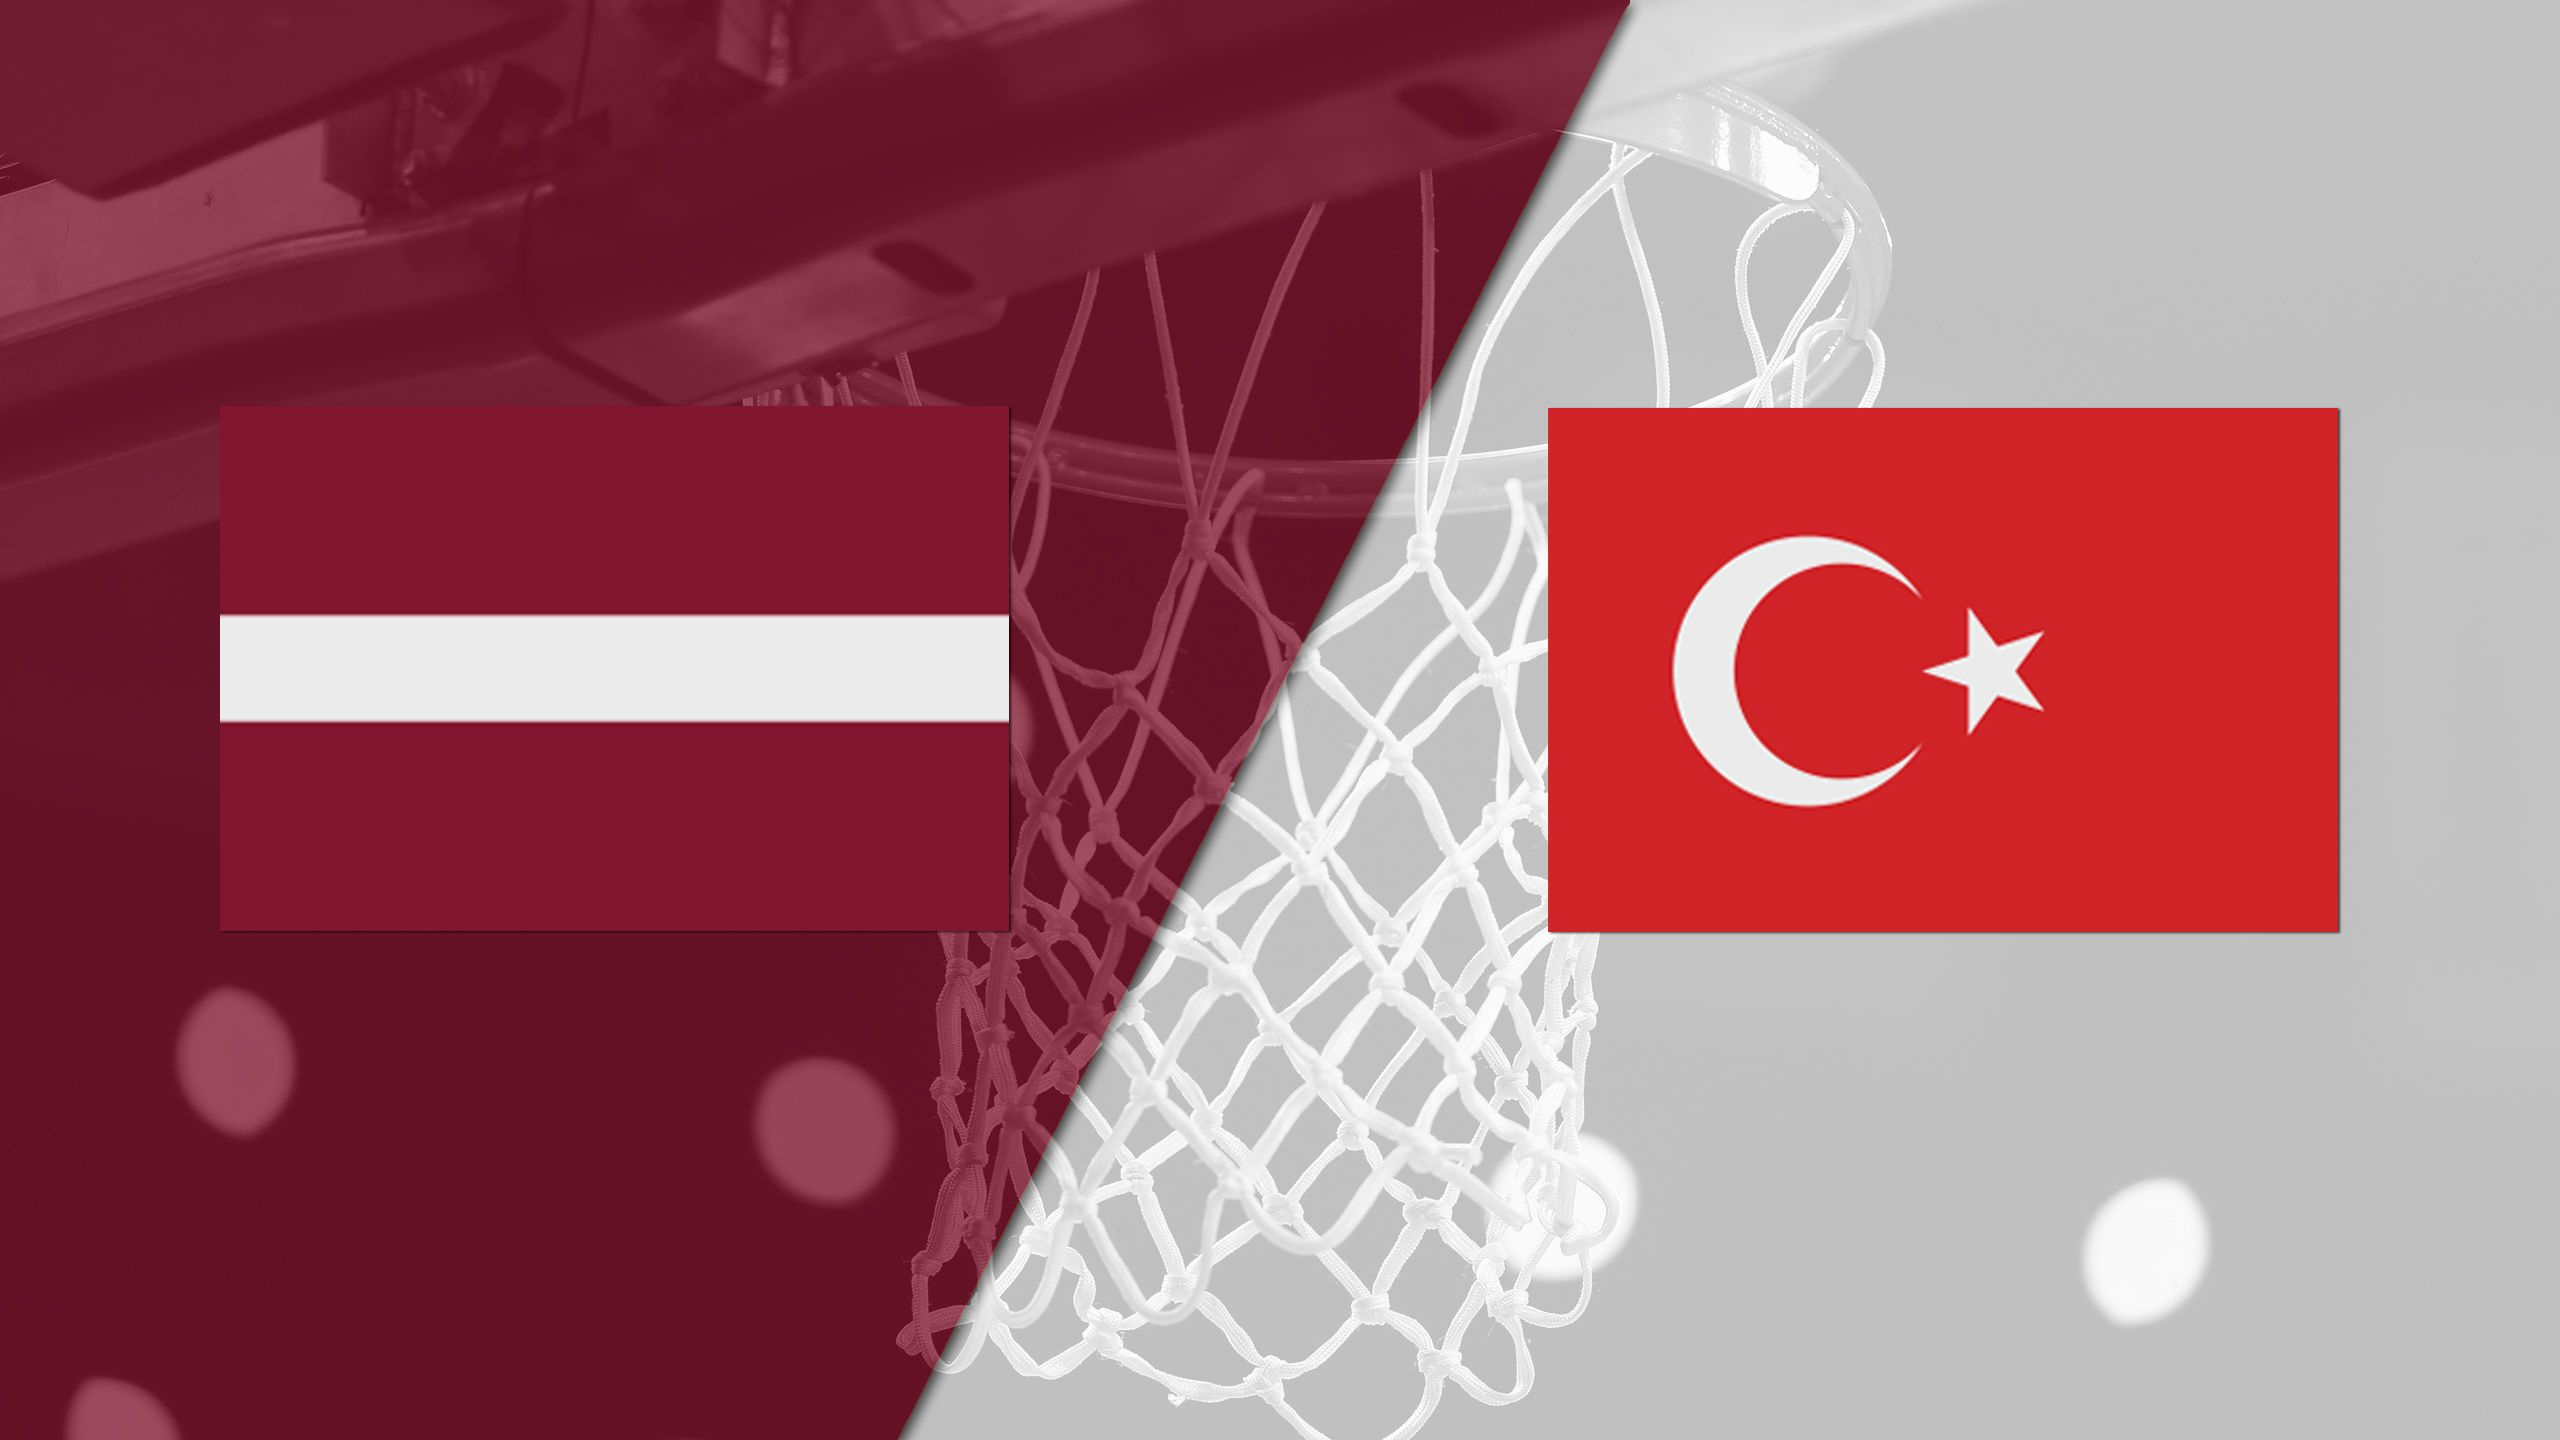 Latvia vs. Turkey (FIBA World Cup 2019 Qualifier)